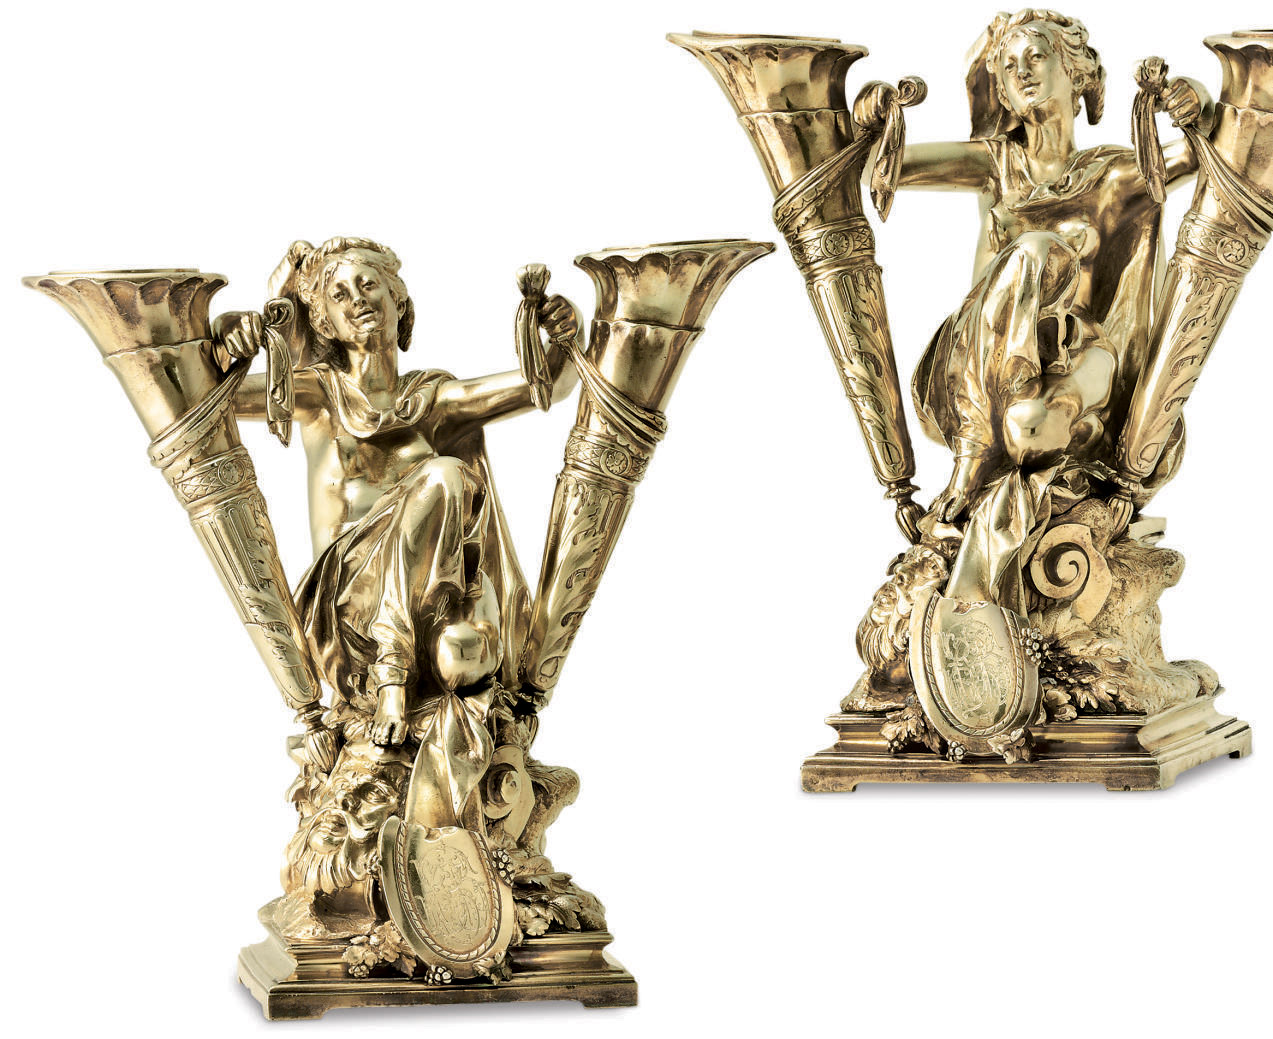 A PAIR OF FRENCH SILVER-GILT VASES